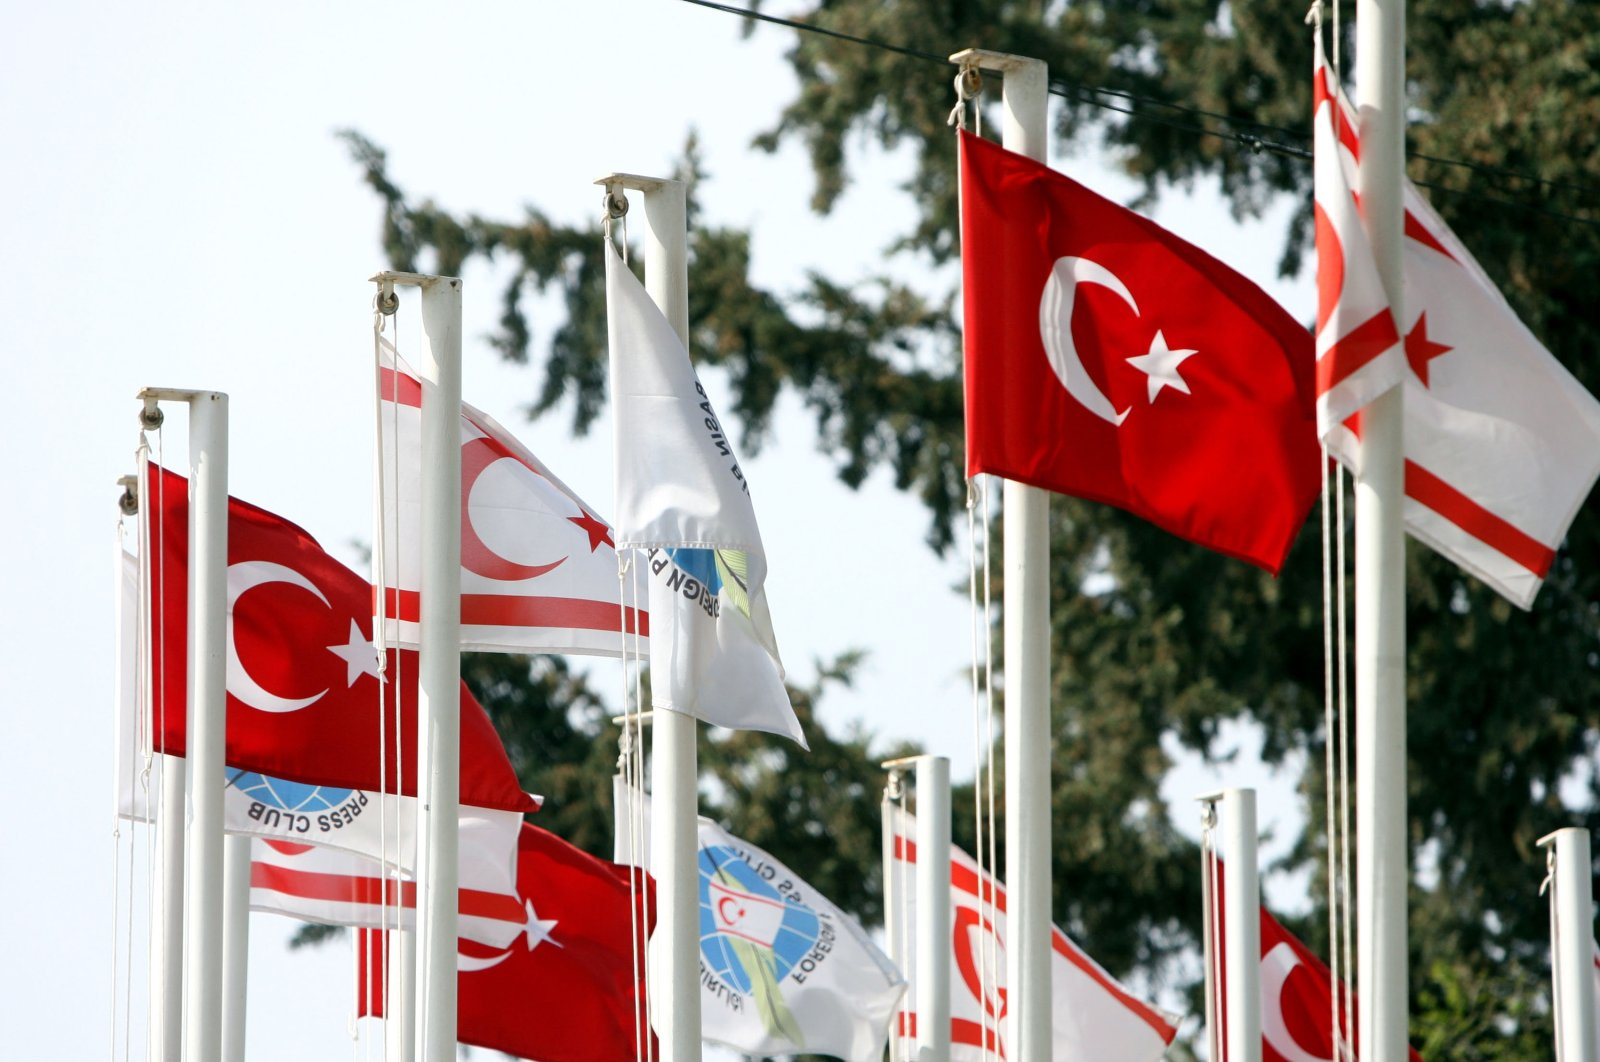 Turkish flags fly close to the border with Greek Cyprus at the Ledra Palace checkpoint in Lefkoşa (Nicosia), Turkish Cyprus, Feb. 23, 2008. (Getty Images Photo)